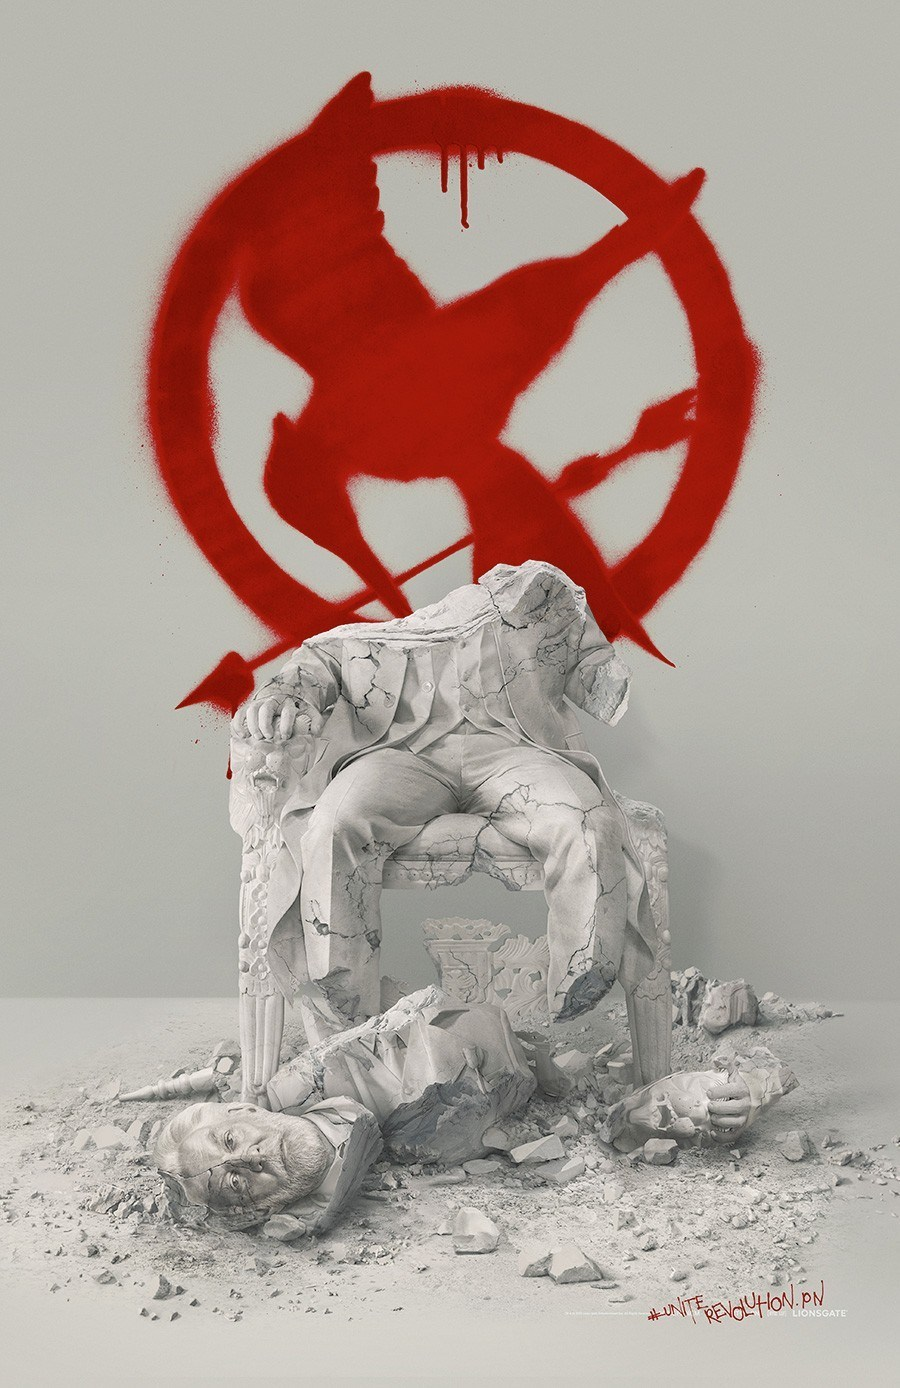 hunger games mockingjay part 2 trailer images 2015